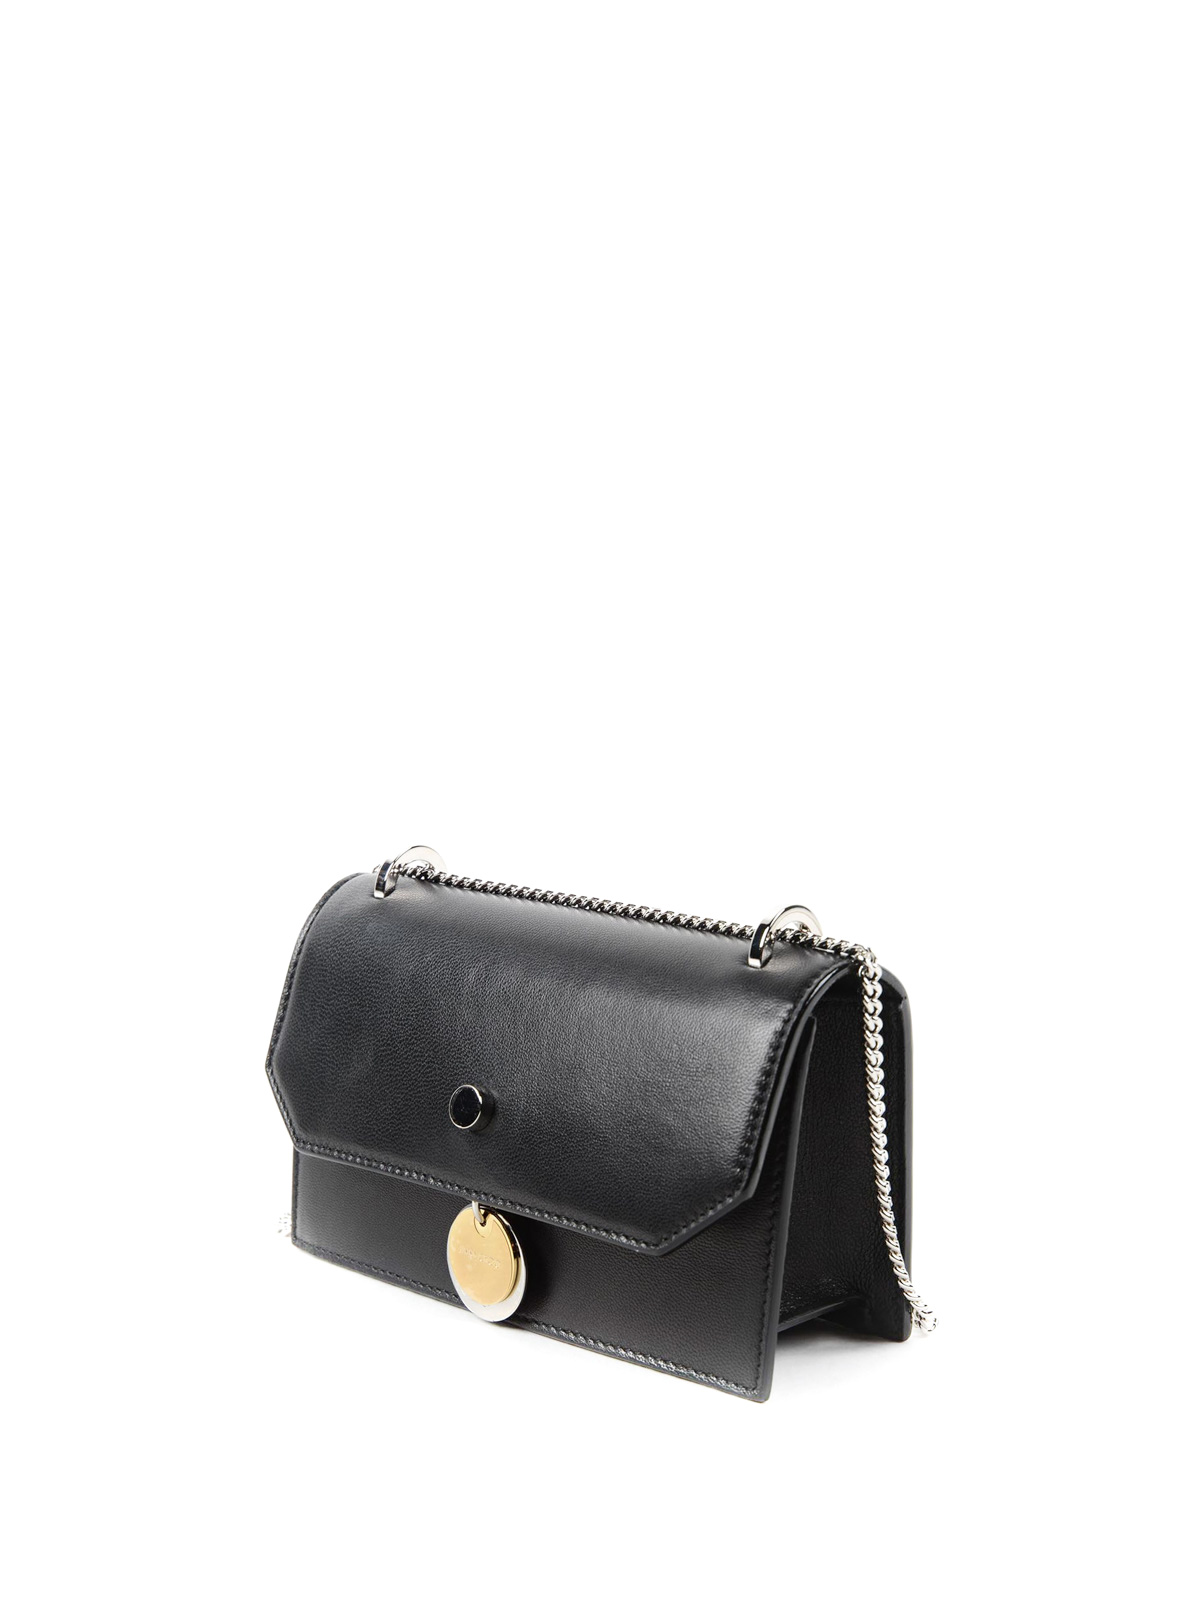 Outlet 2018 Sale Excellent Finley bag - Black Jimmy Choo London Quality For Sale Free Shipping 100% Authentic Sale Online Manchester Great Sale For Sale B1JEw5Mu8x